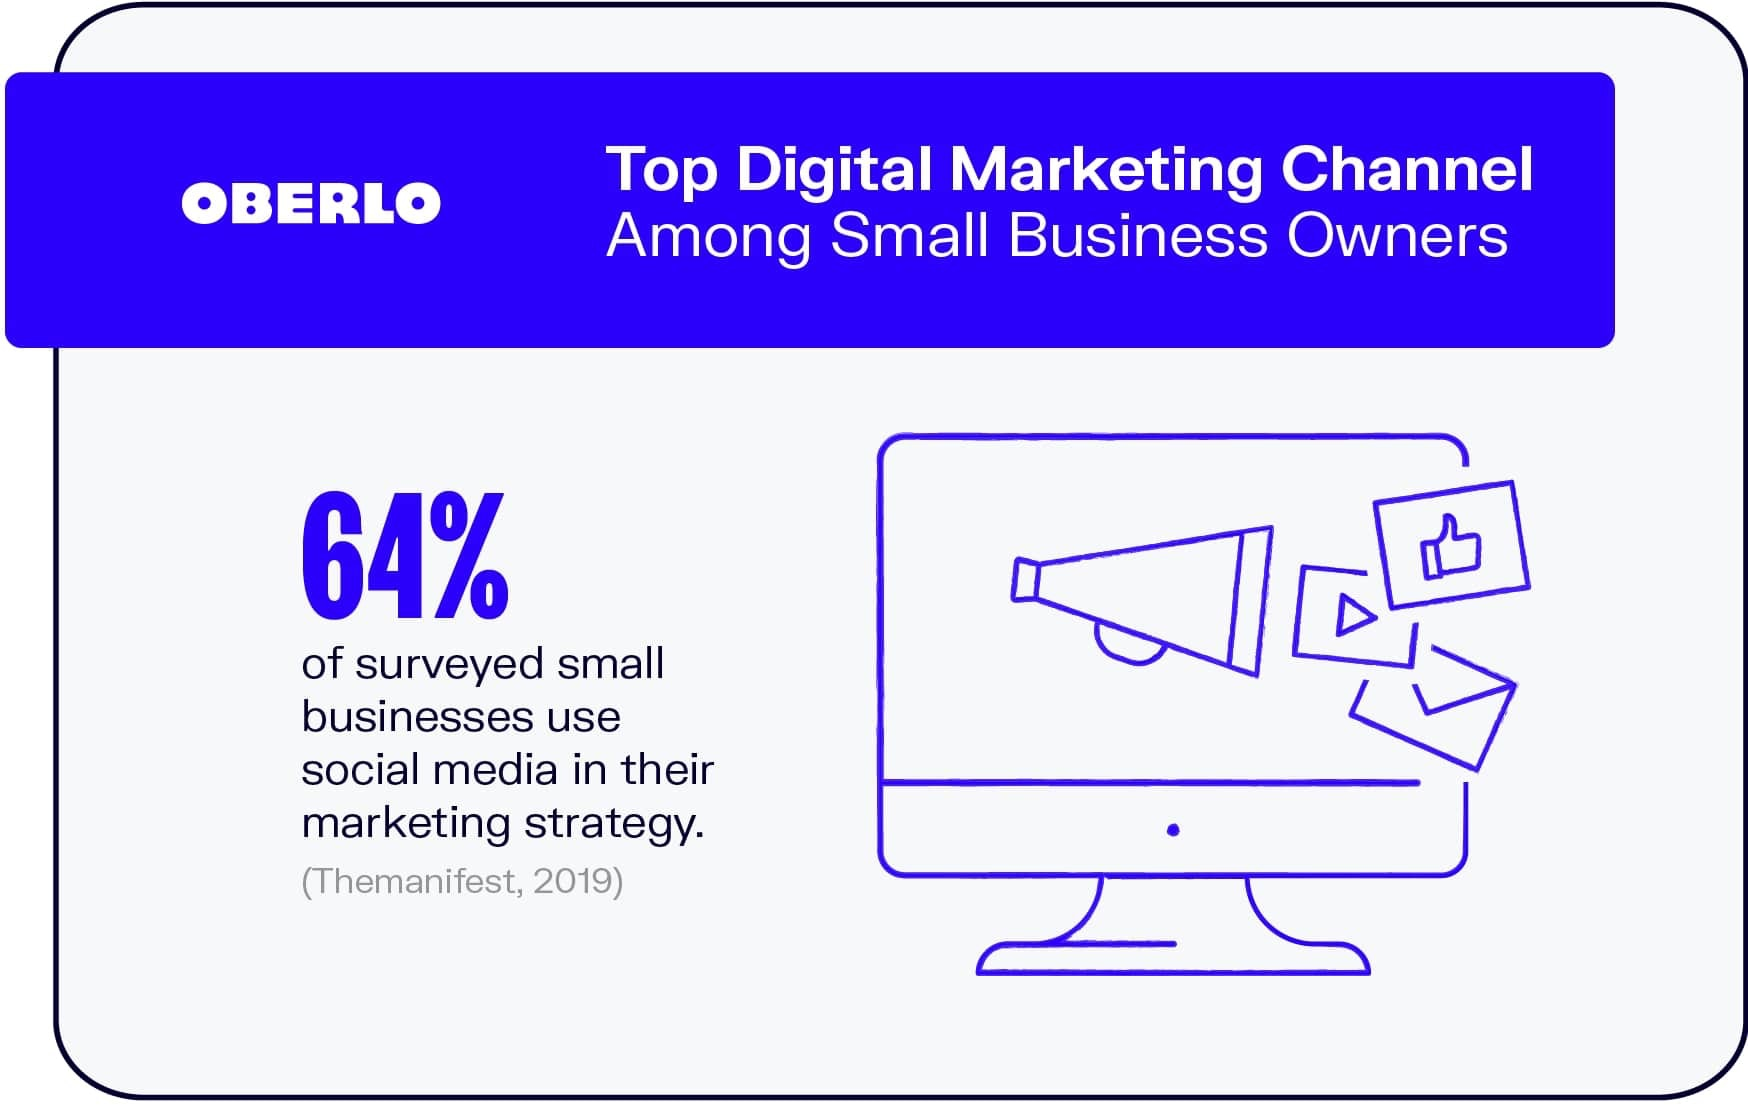 Top Digital Marketing Channel Among Small Business Owners